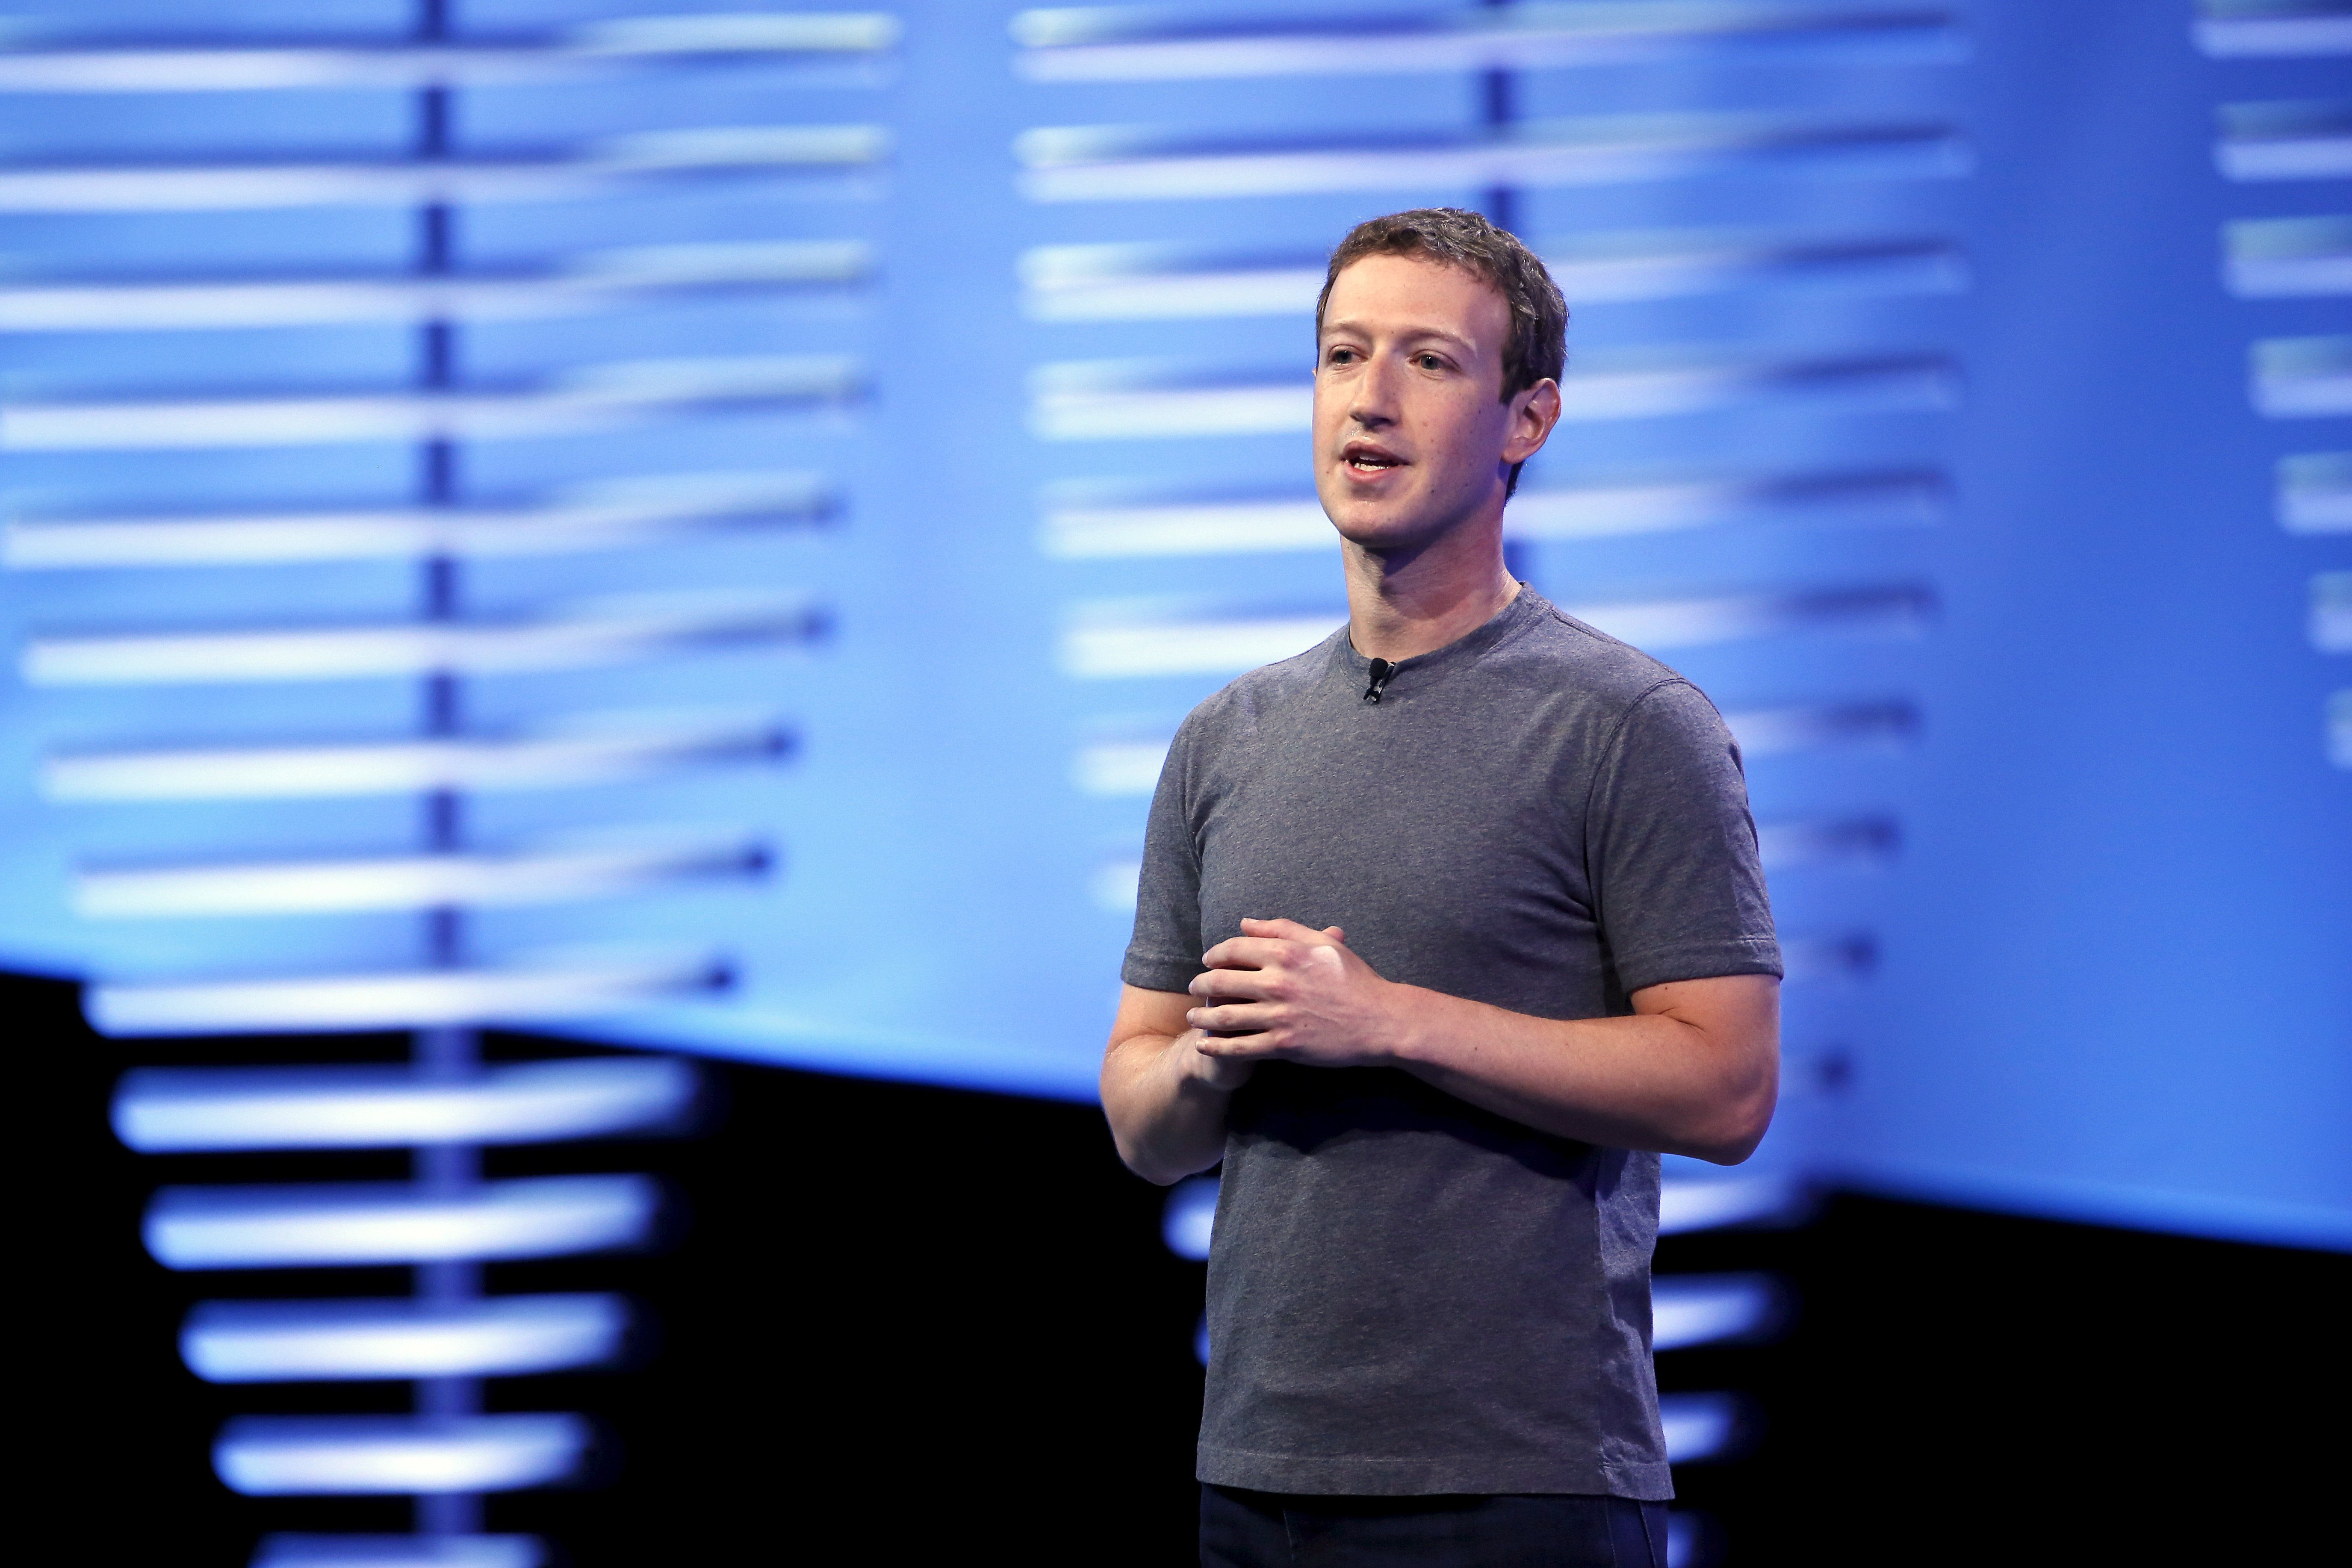 Pressure building on Facebook CEO over data breach